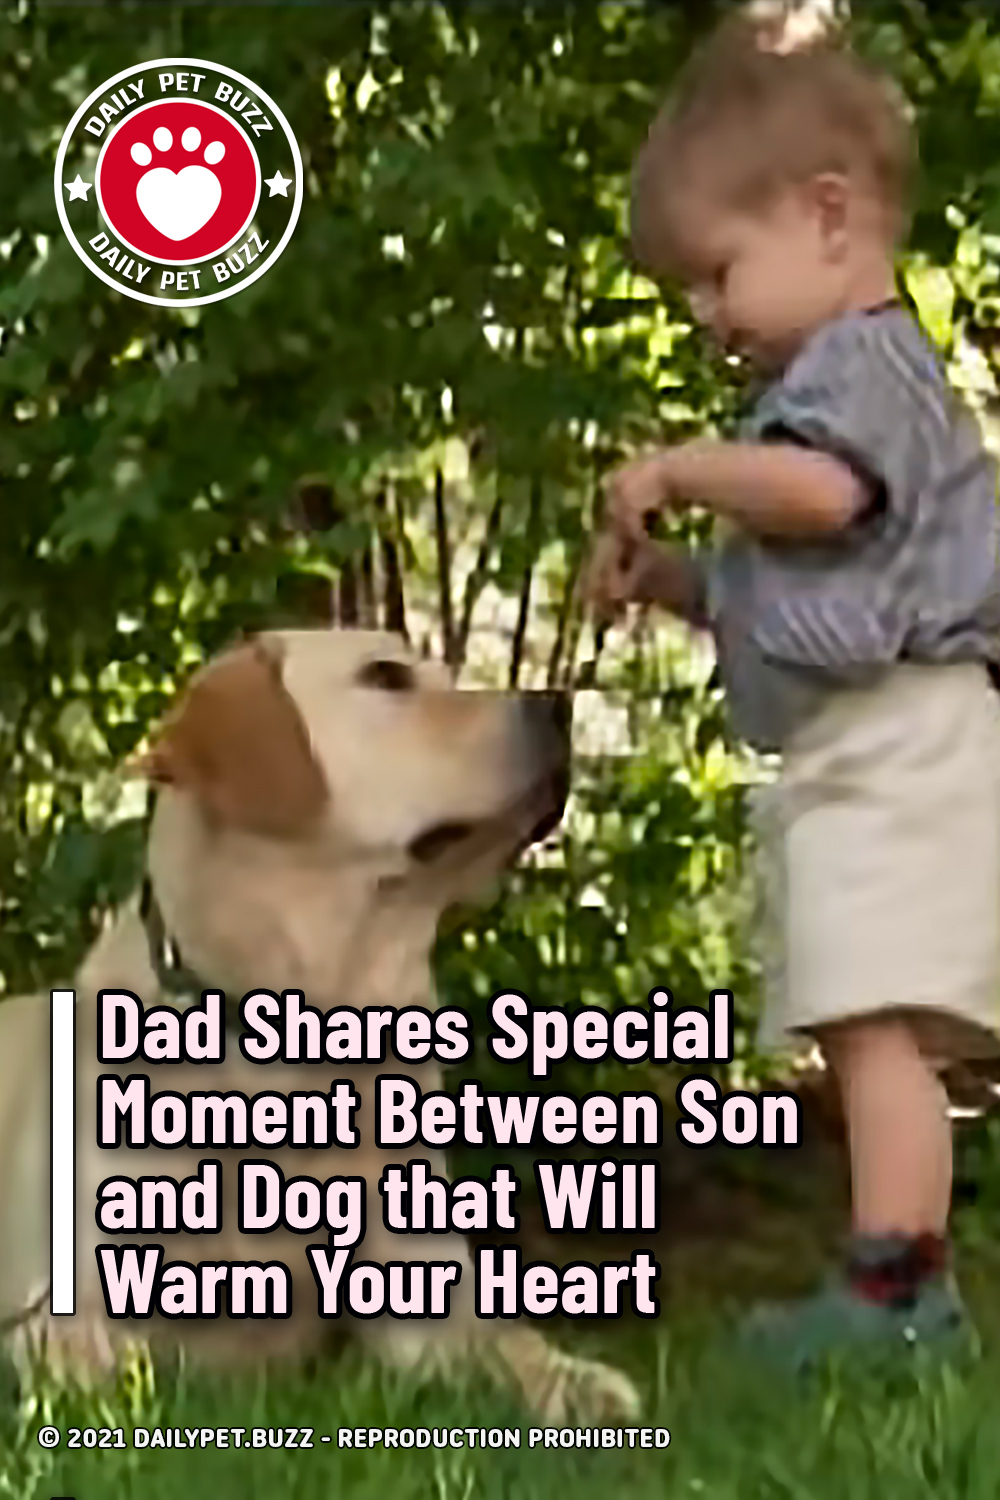 Dad Shares Special Moment Between Son and Dog that Will Warm Your Heart